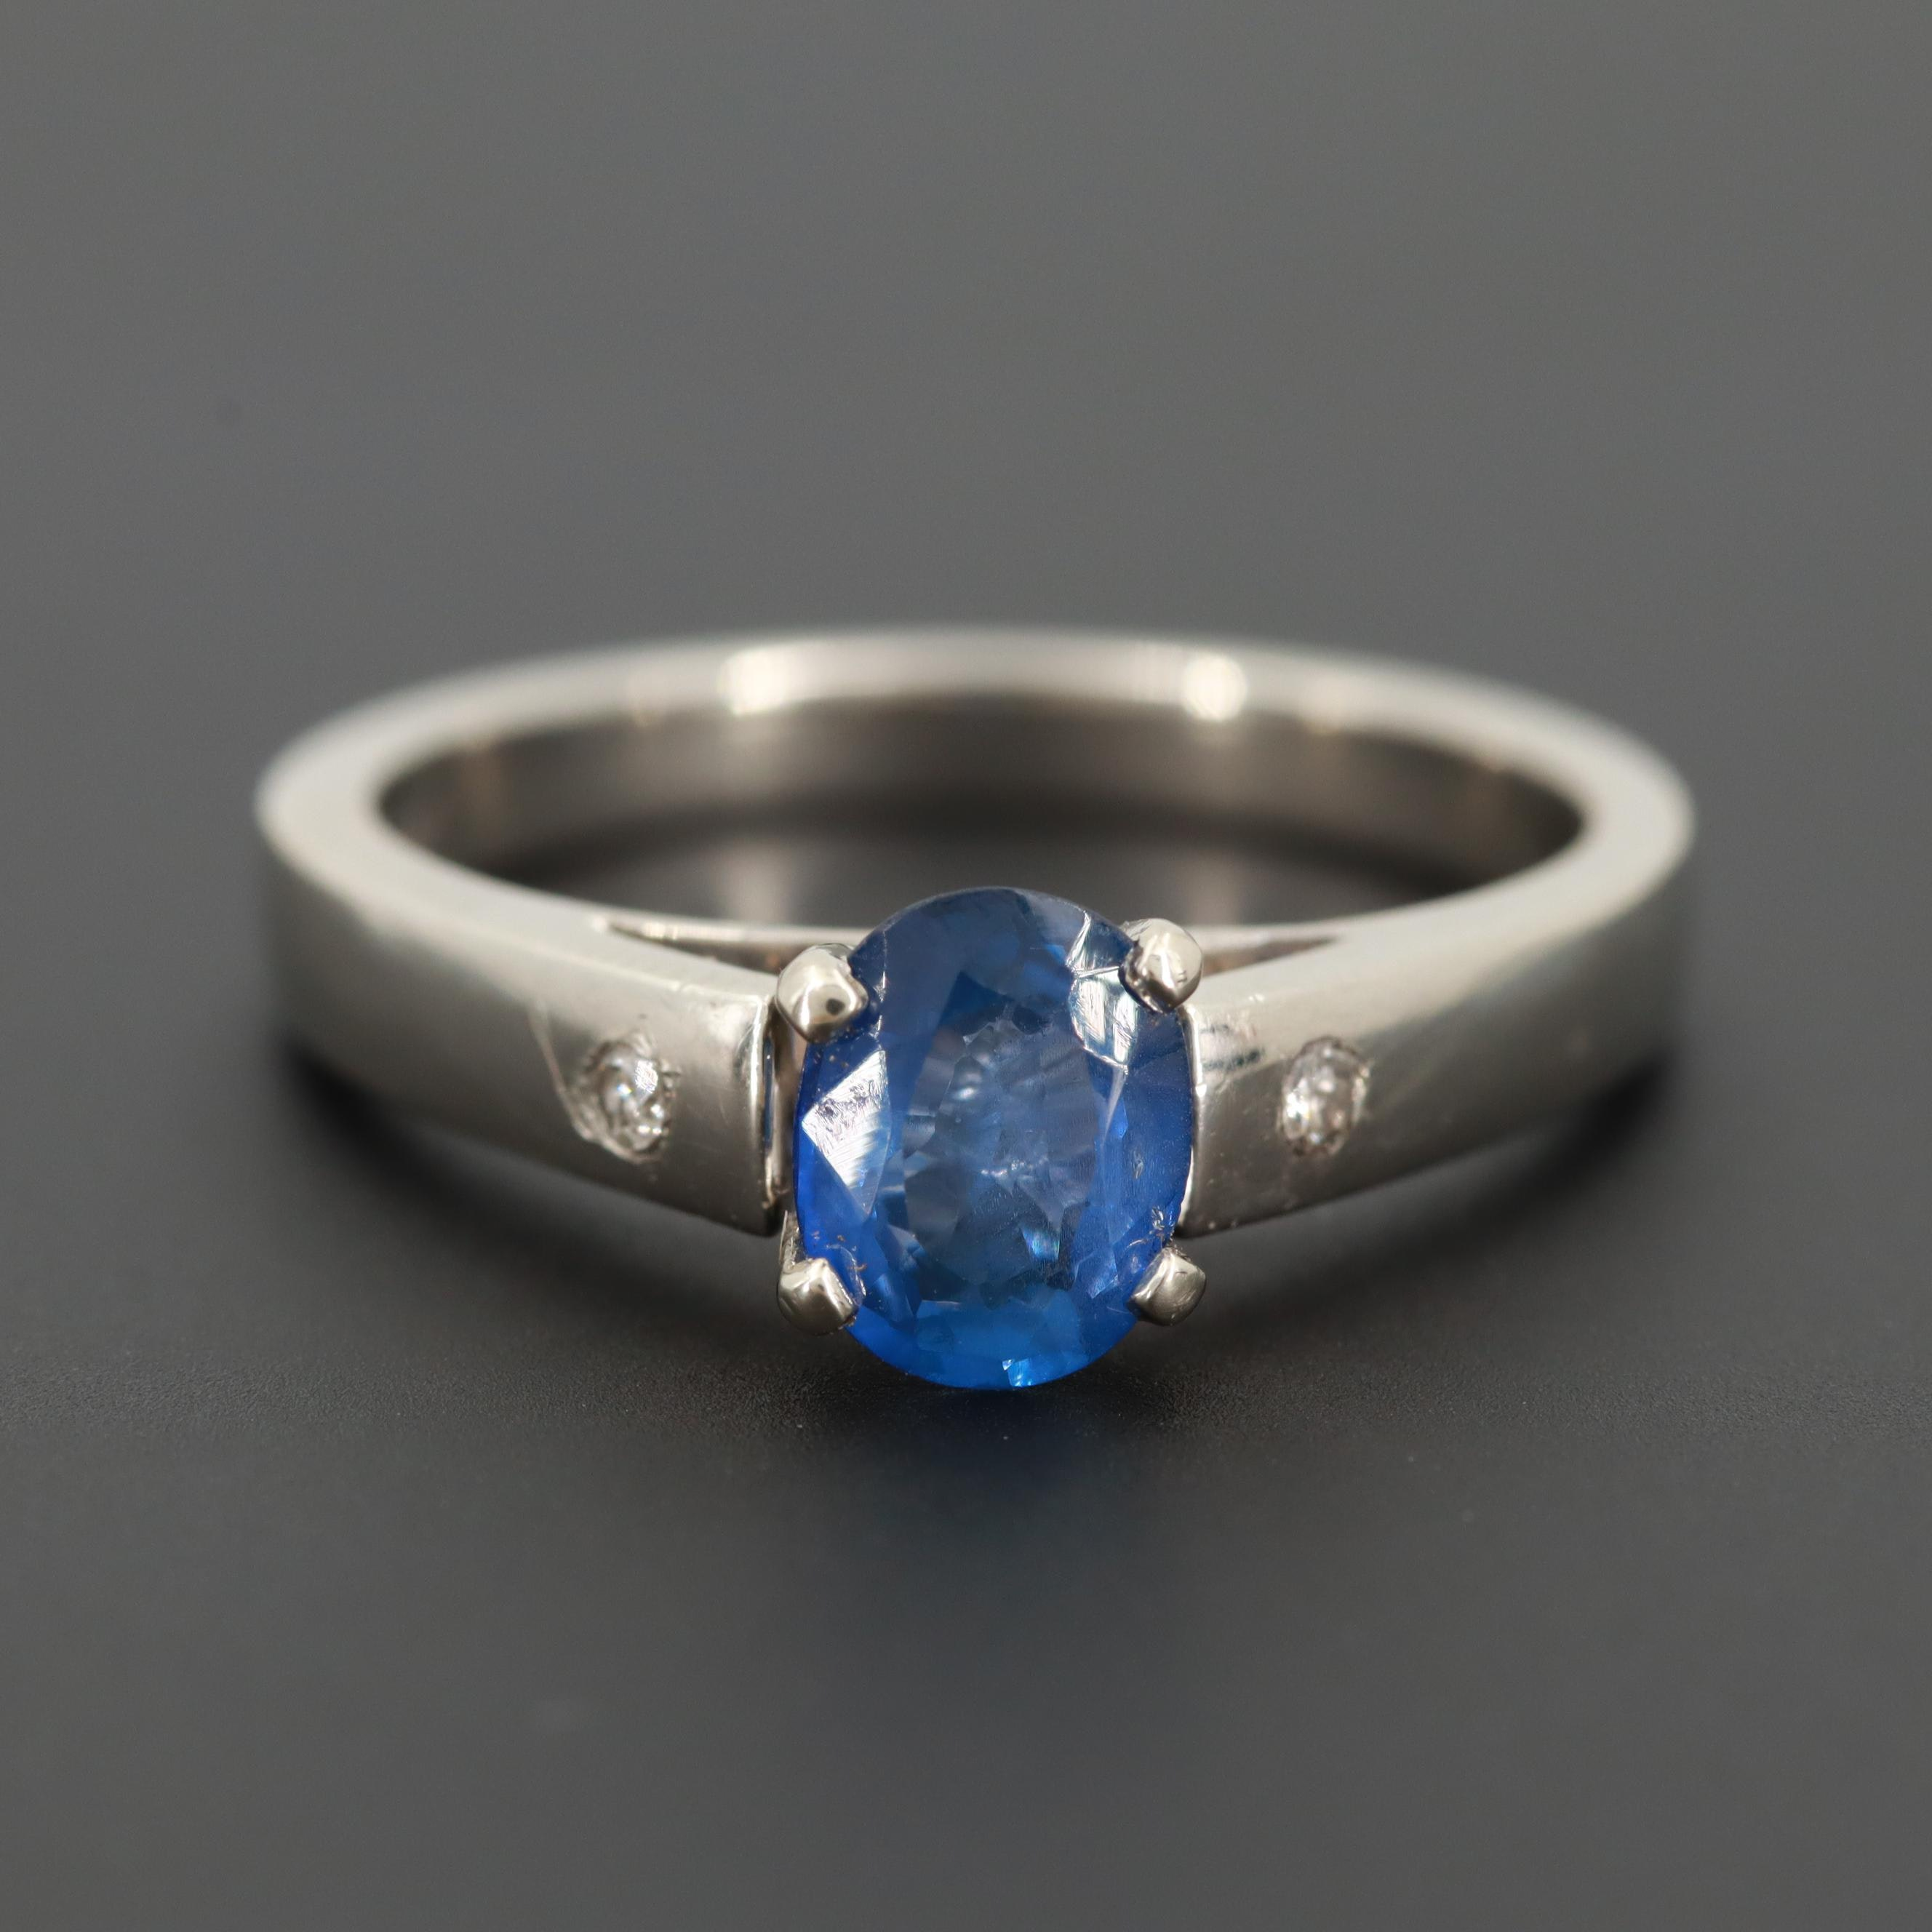 Zeghani 14K White Gold Sapphire and Diamond Ring